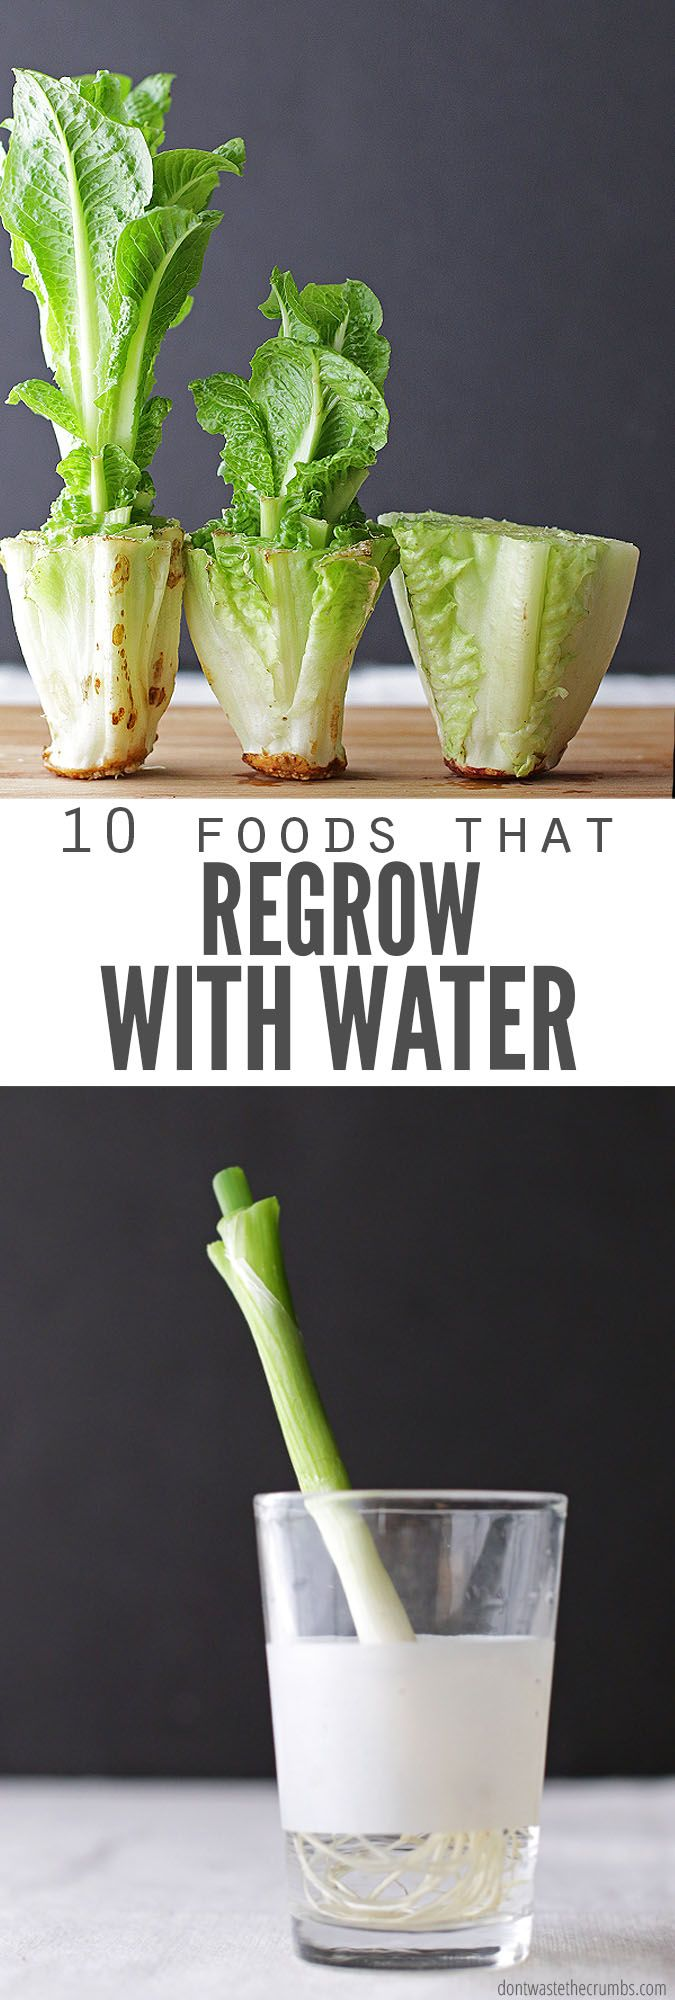 How to Regrow Food in Water 10 Foods that Regrow Without